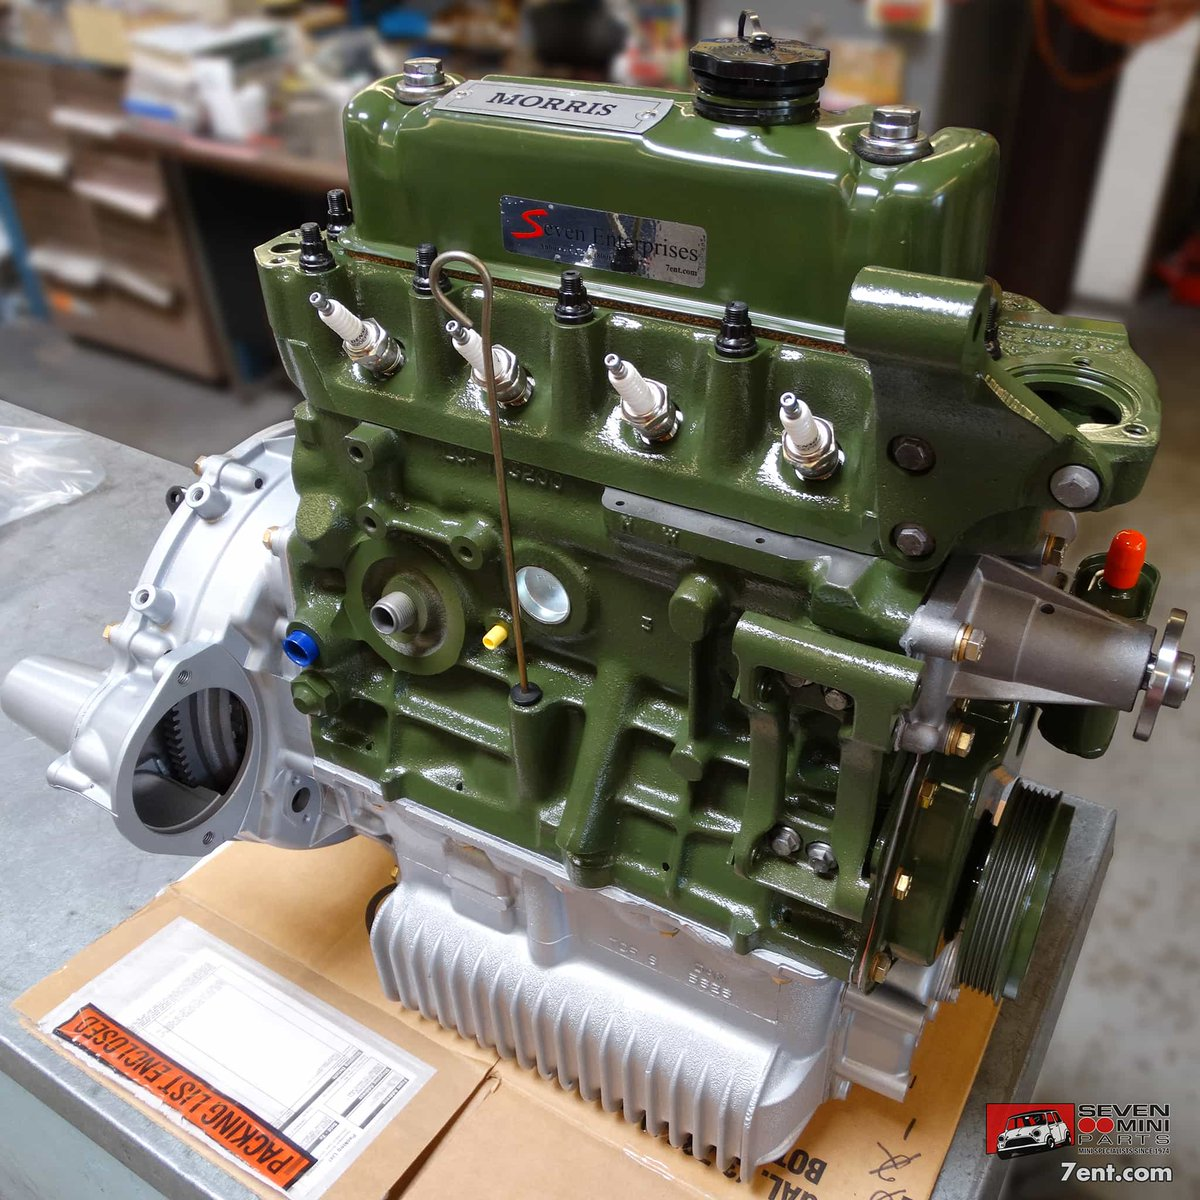 Seven-rebuilt classic Mini 1275 MPi (multi-point injection) - how many differences can you spot between this and an earlier-type engine? | https://t.co/gToiSUauMQ  #classicminiengine #SevenMachineShop #classicminiparts #SevenMiniParts #classicmini #classicminis #mini #minis https://t.co/SHL3IY7vgc